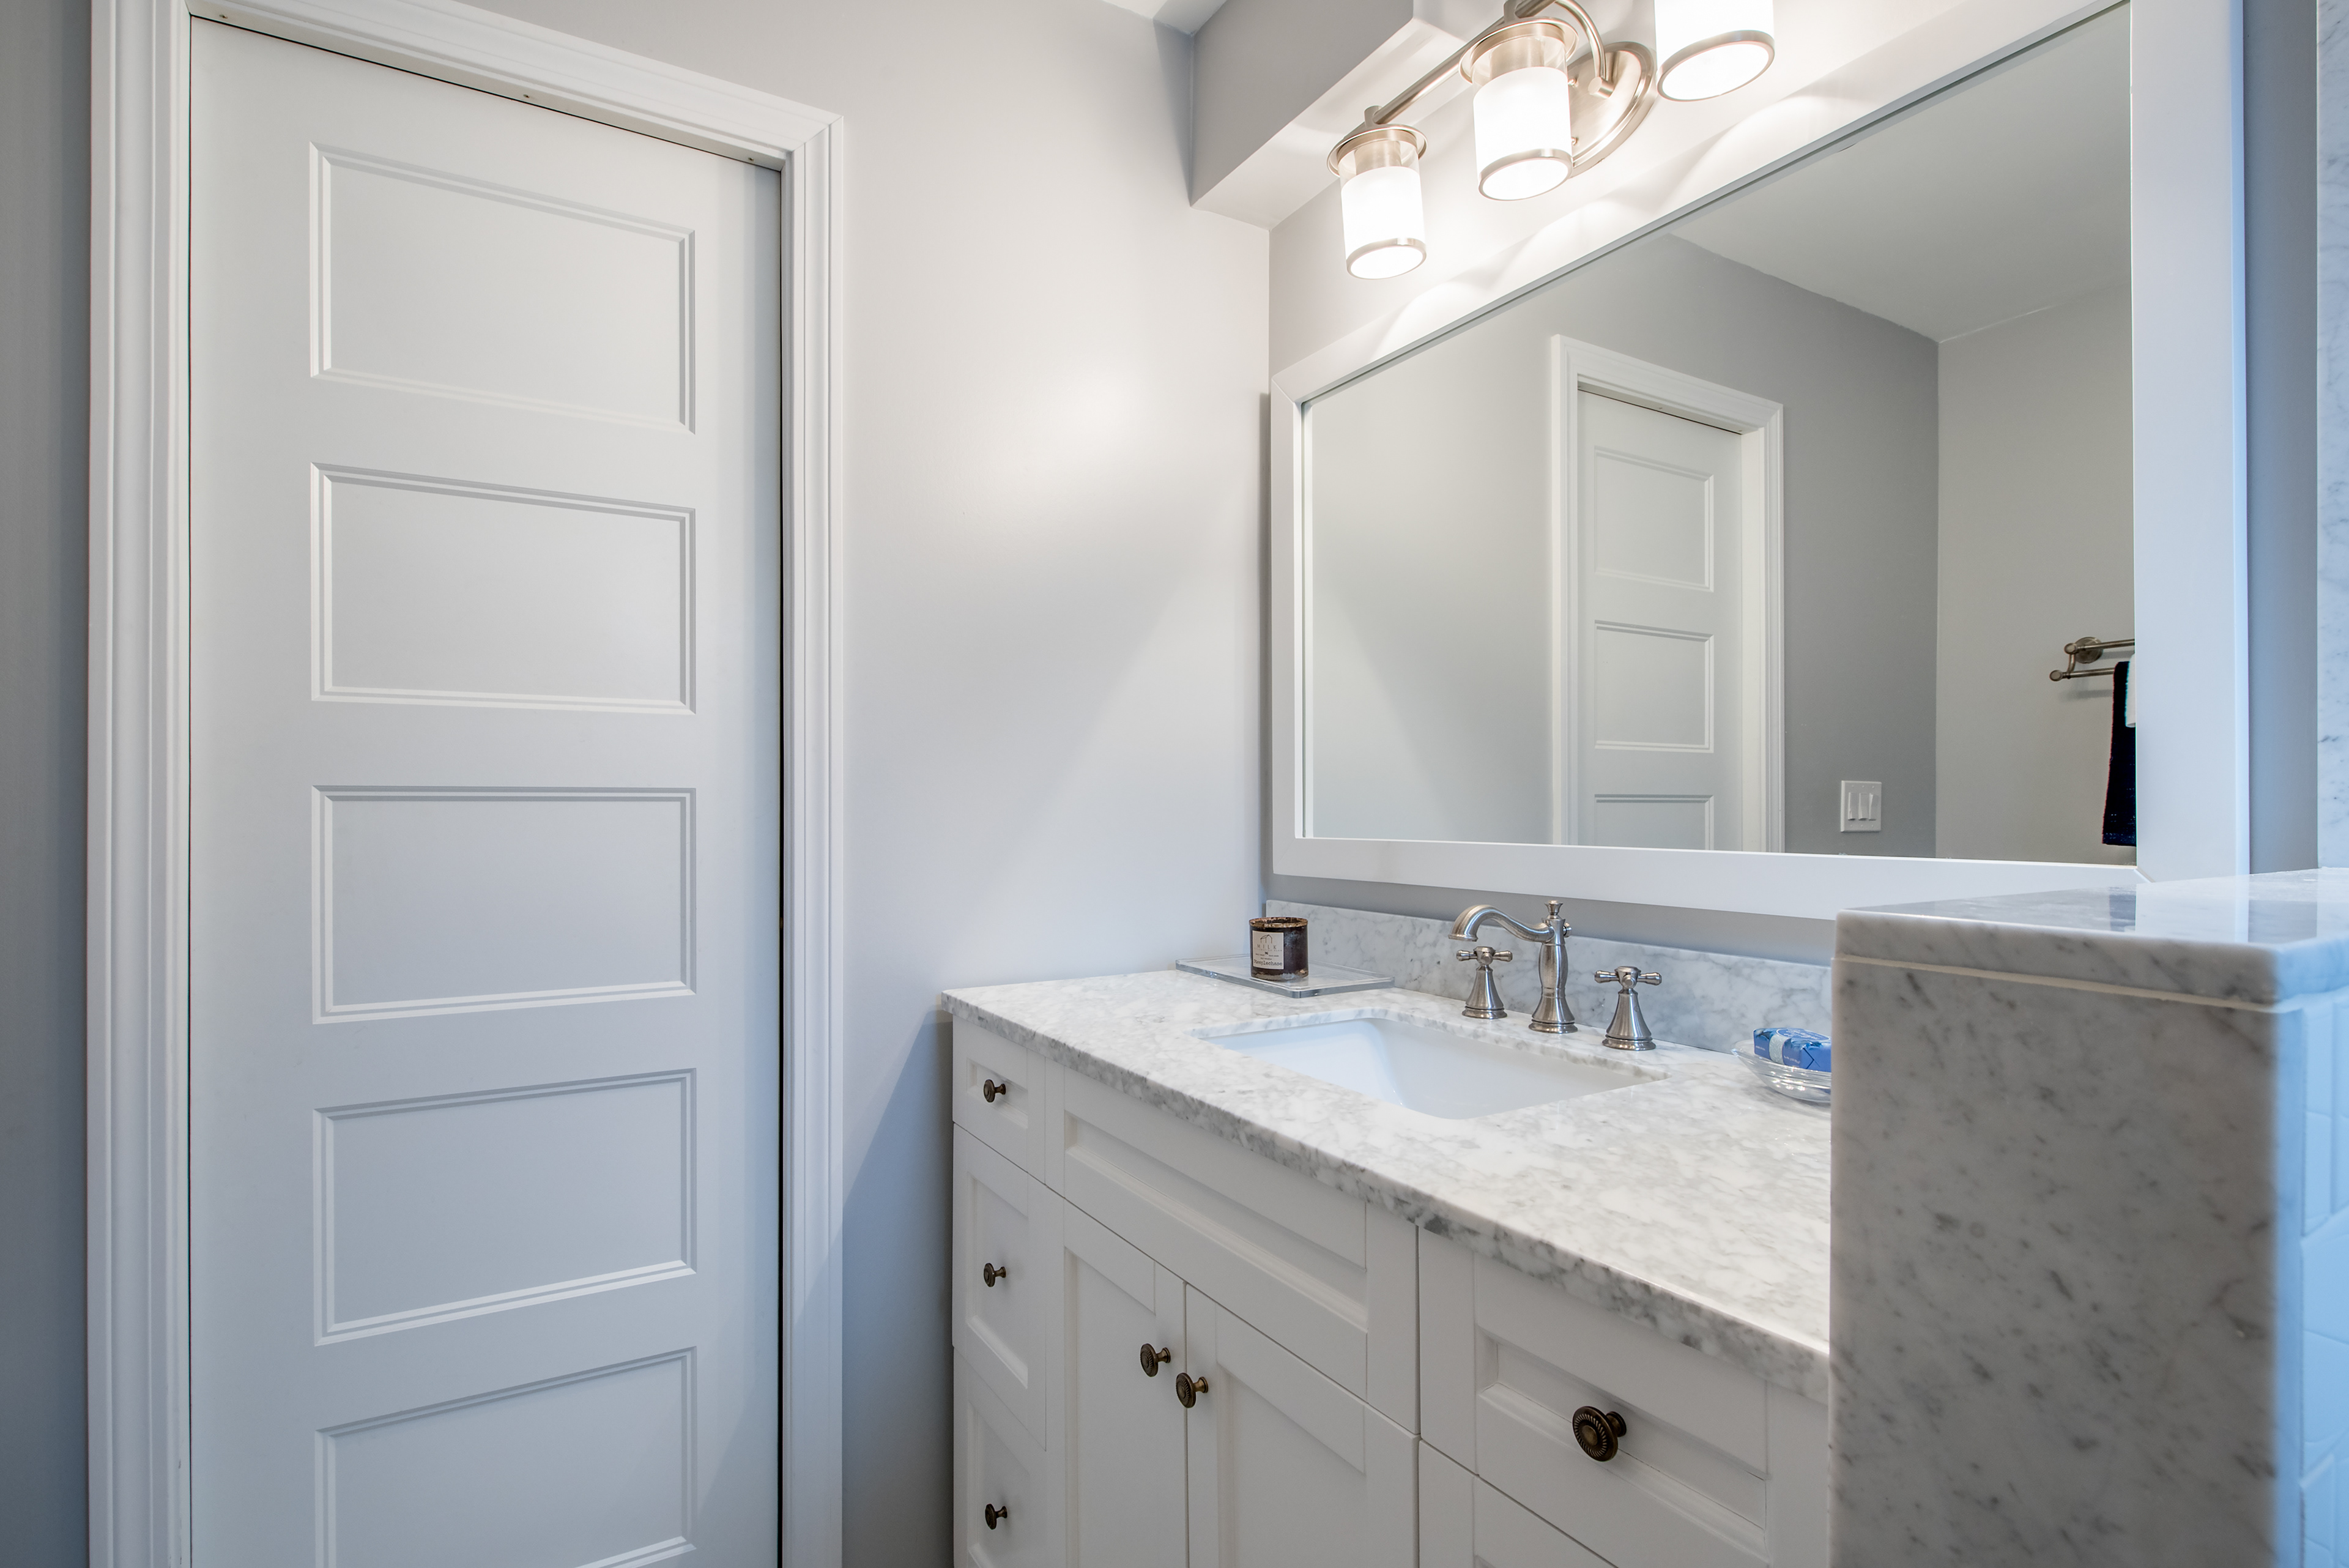 Claire Gardner - East Boston- Master Bathroom Design